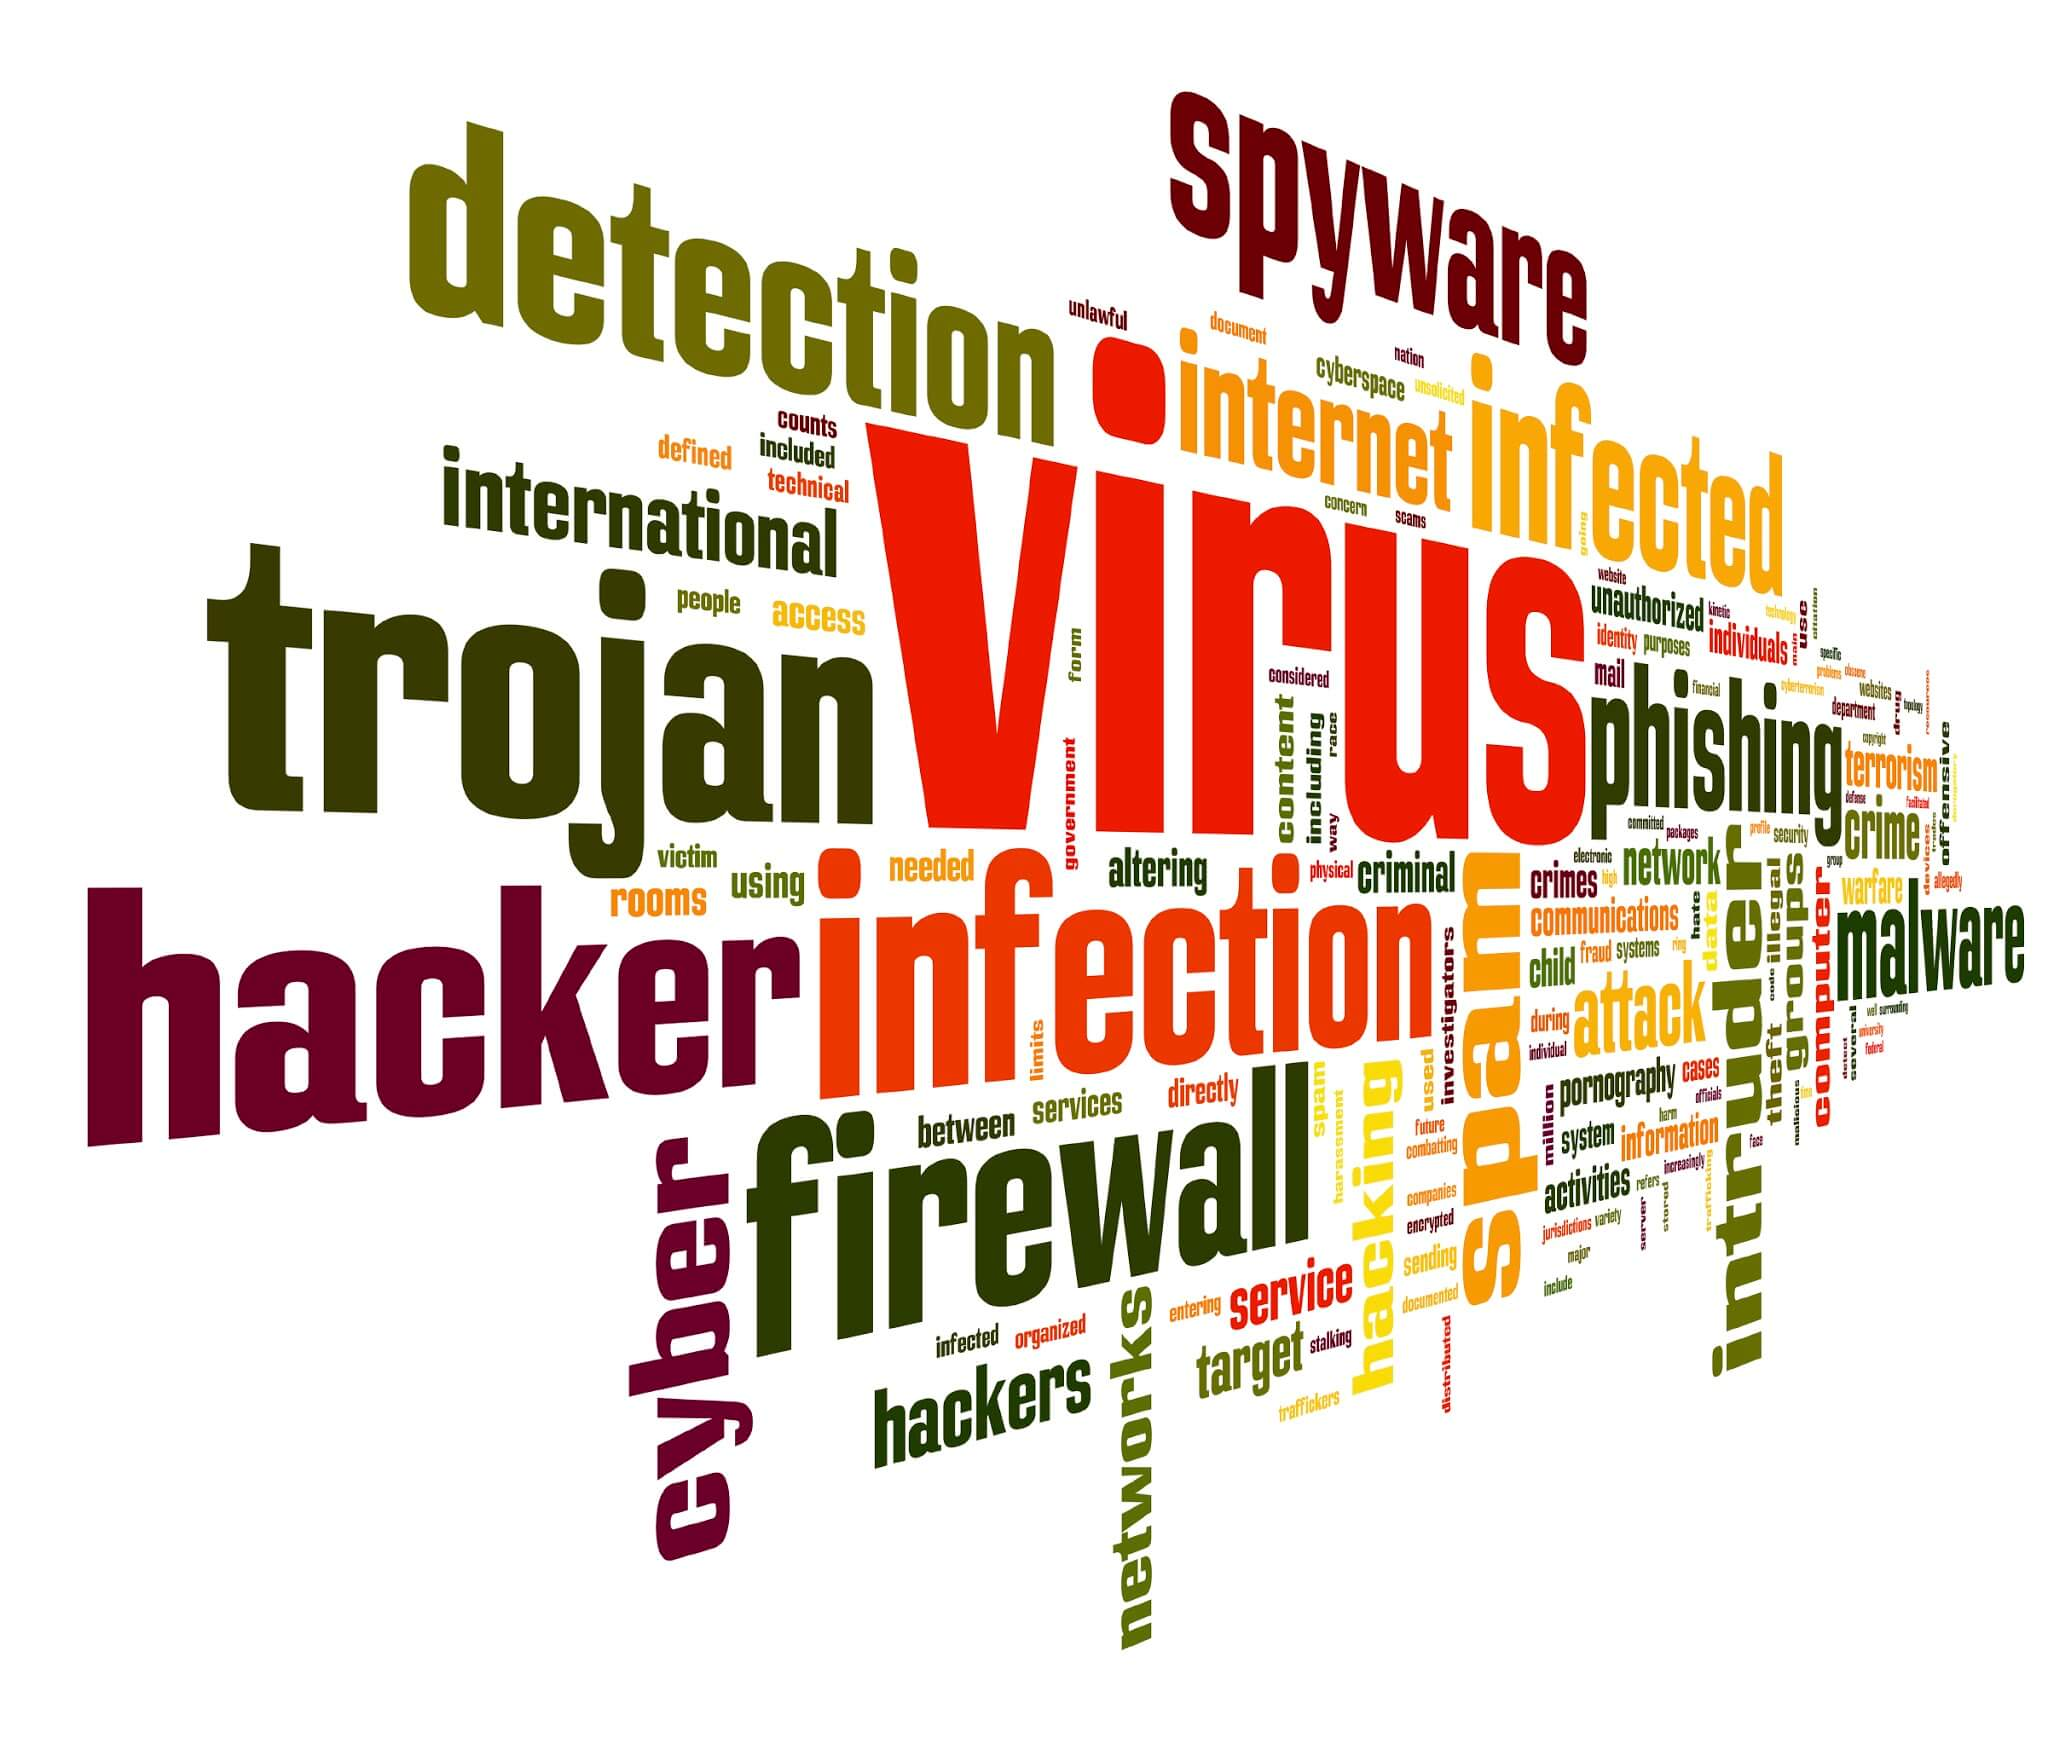 Tips to scan and clean viruses